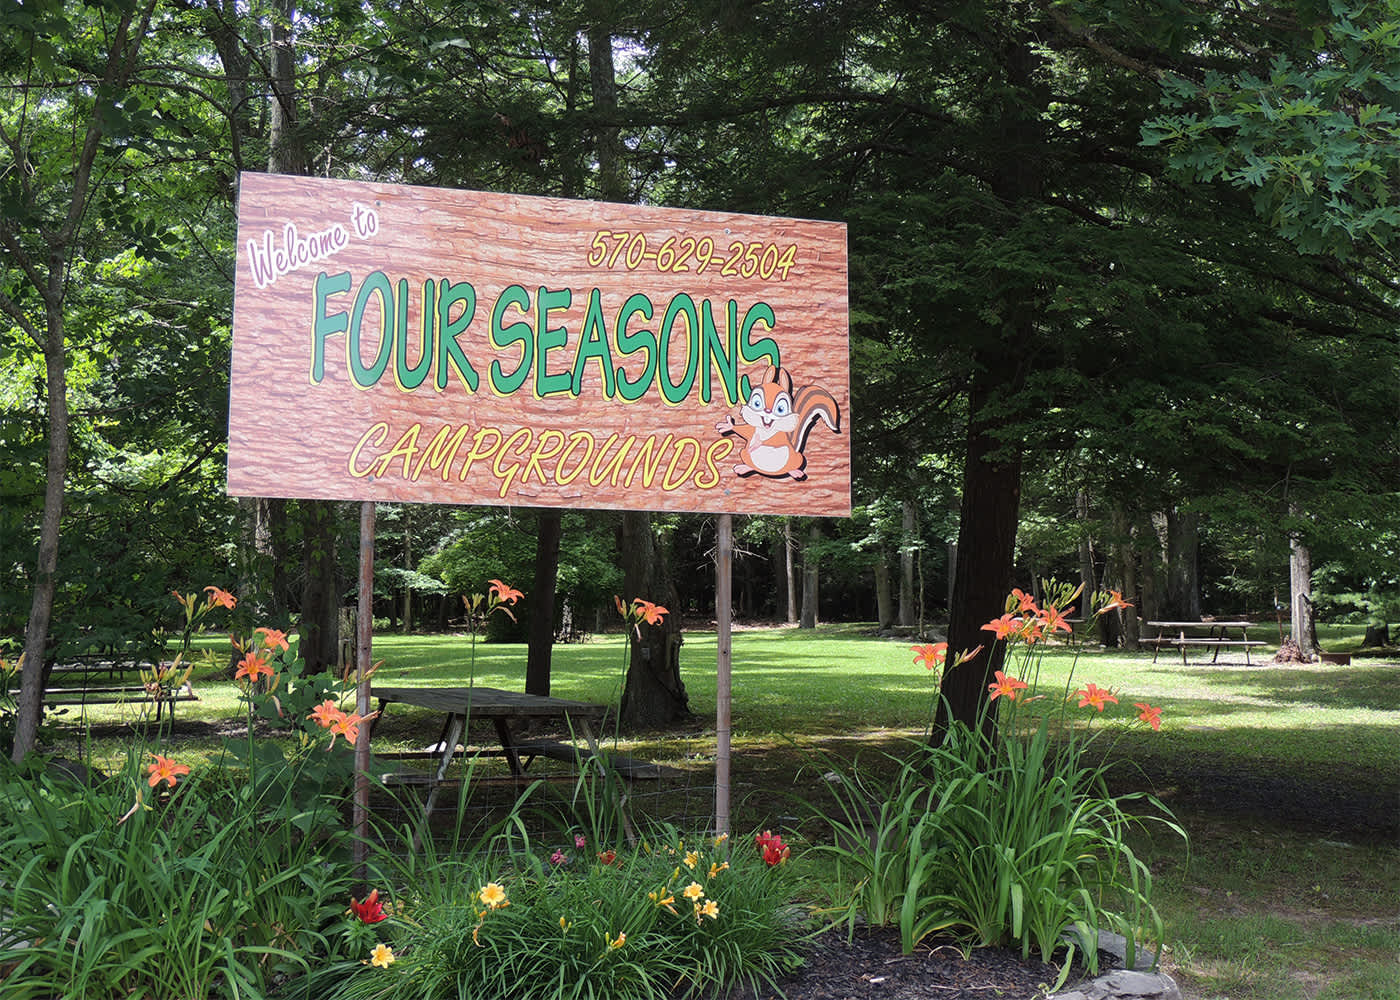 Four Seasons Campgrounds Scotrun Pa 18355